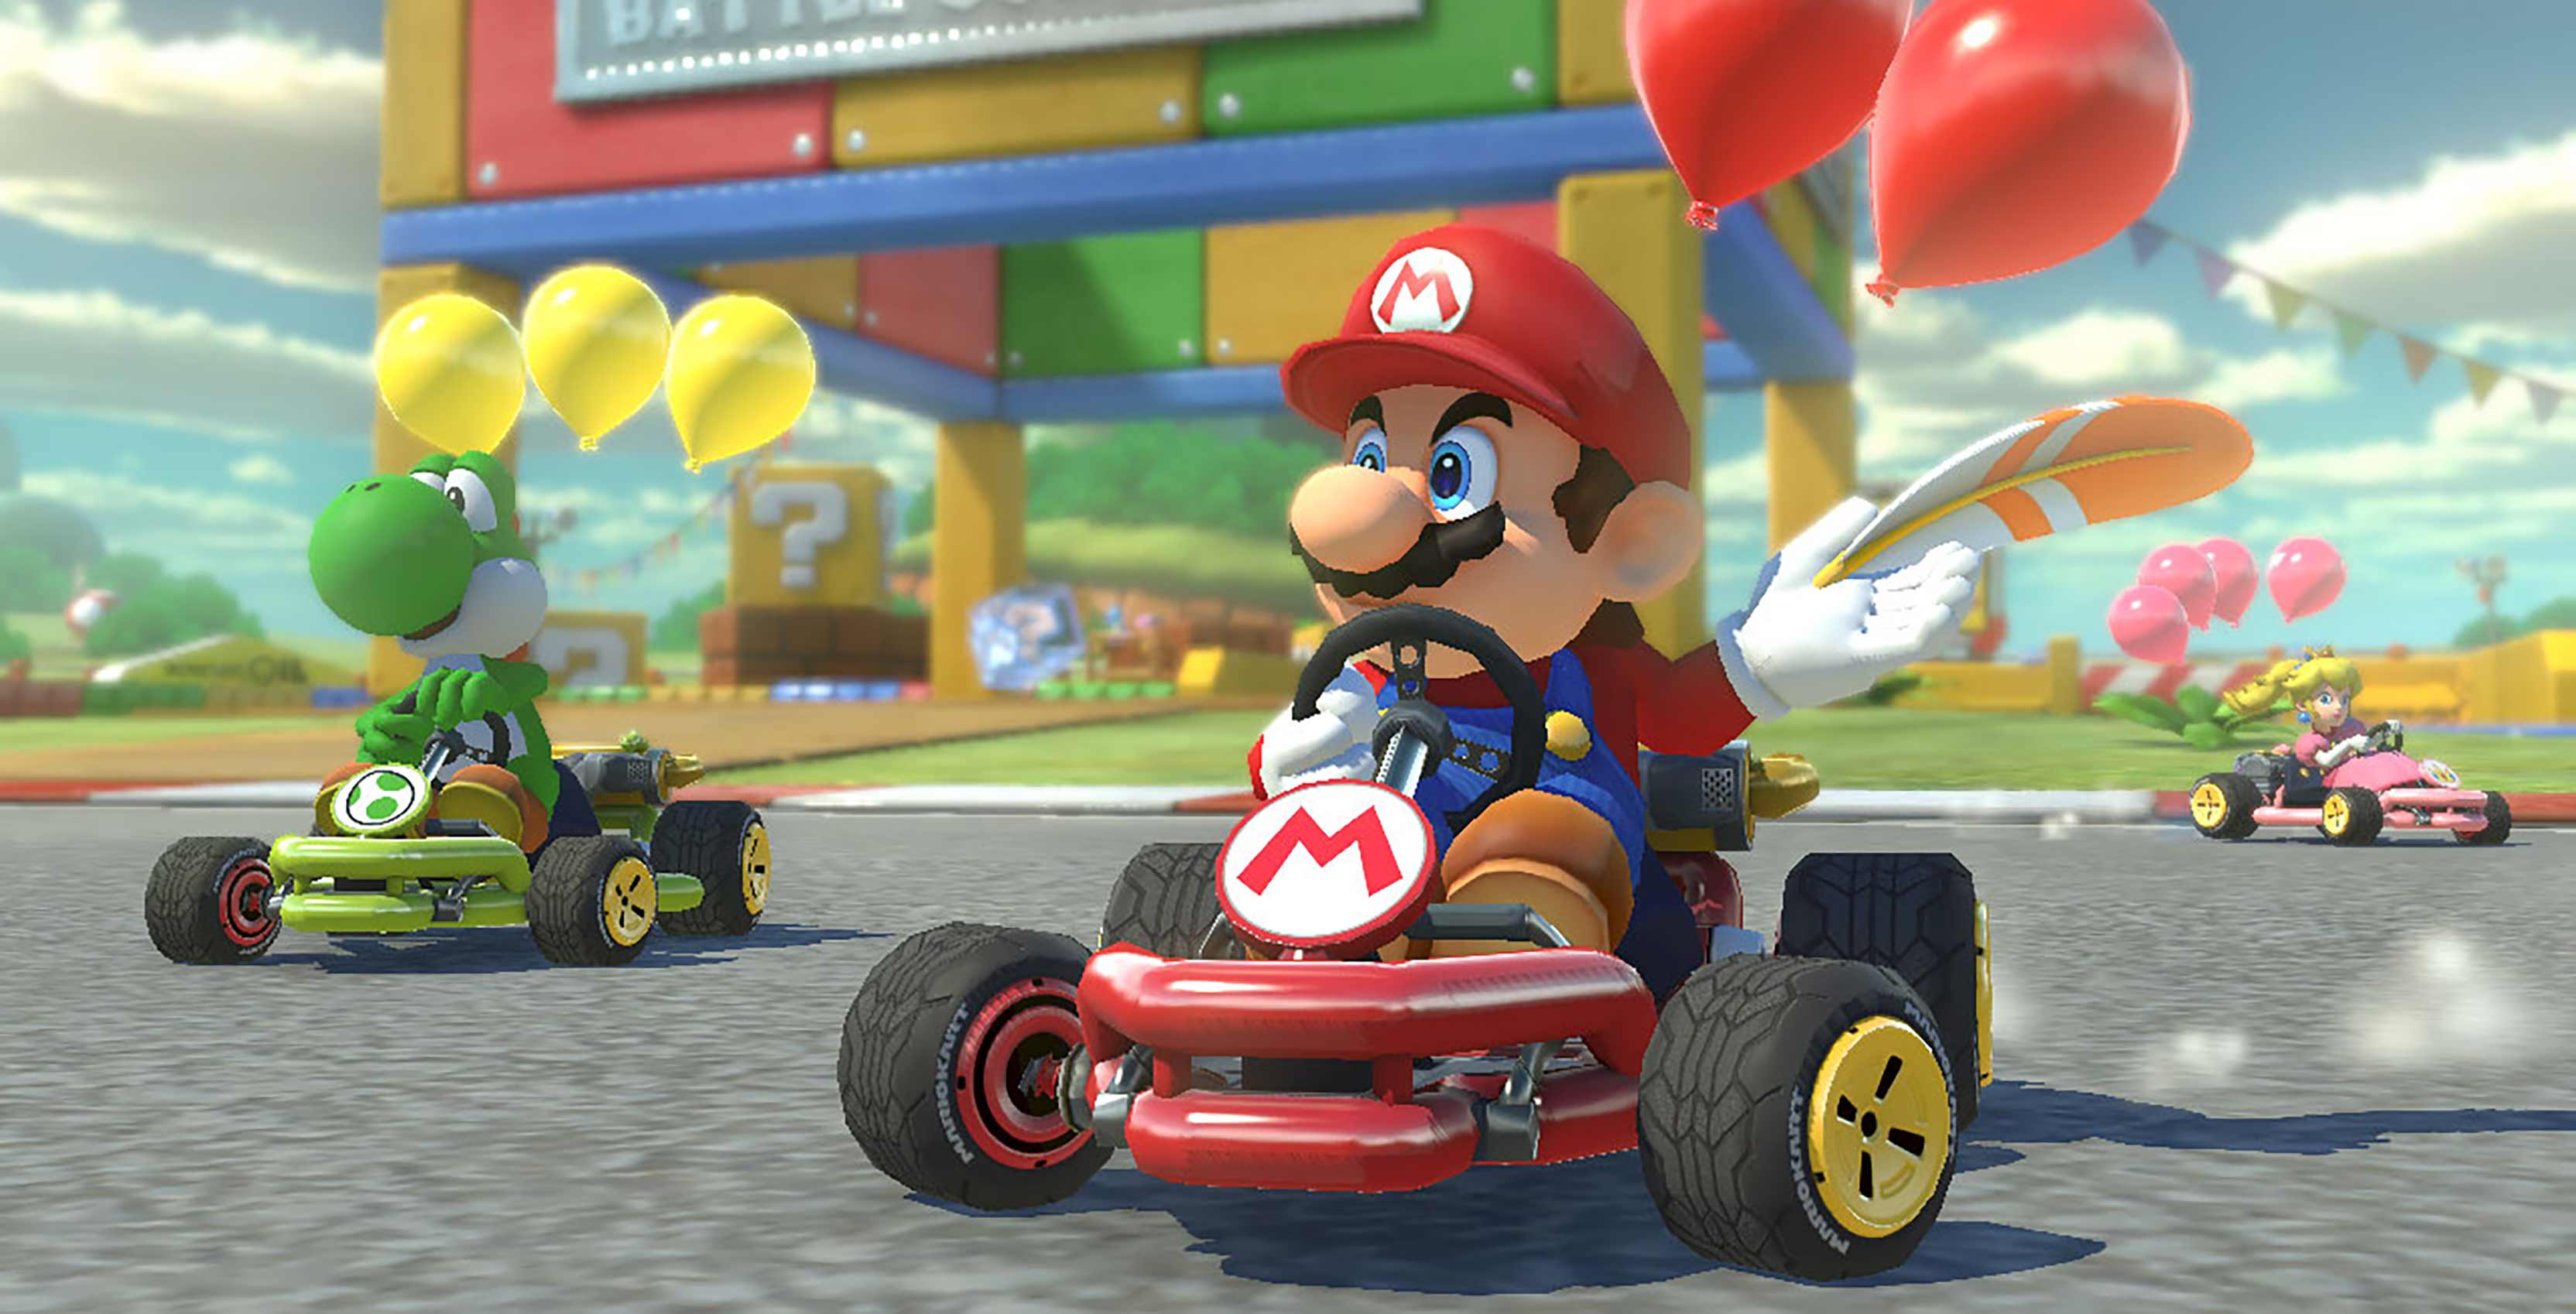 Mario invades Google Maps to help you avoid bananas while driving